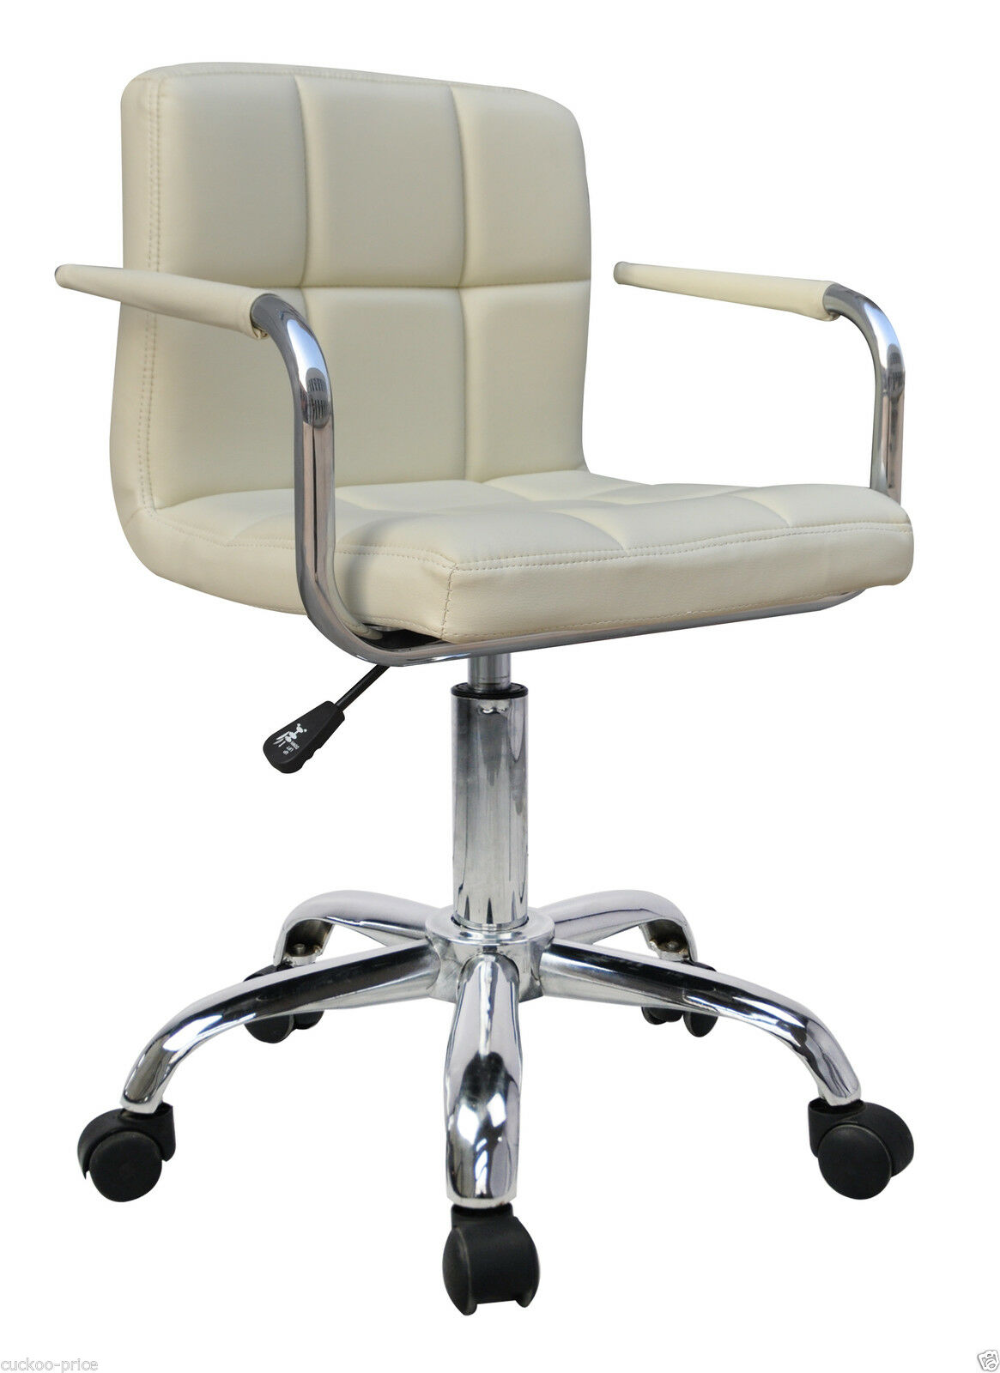 Details about QUALITY NEW DESIGN SWIVEL PU LEATHER OFFICE